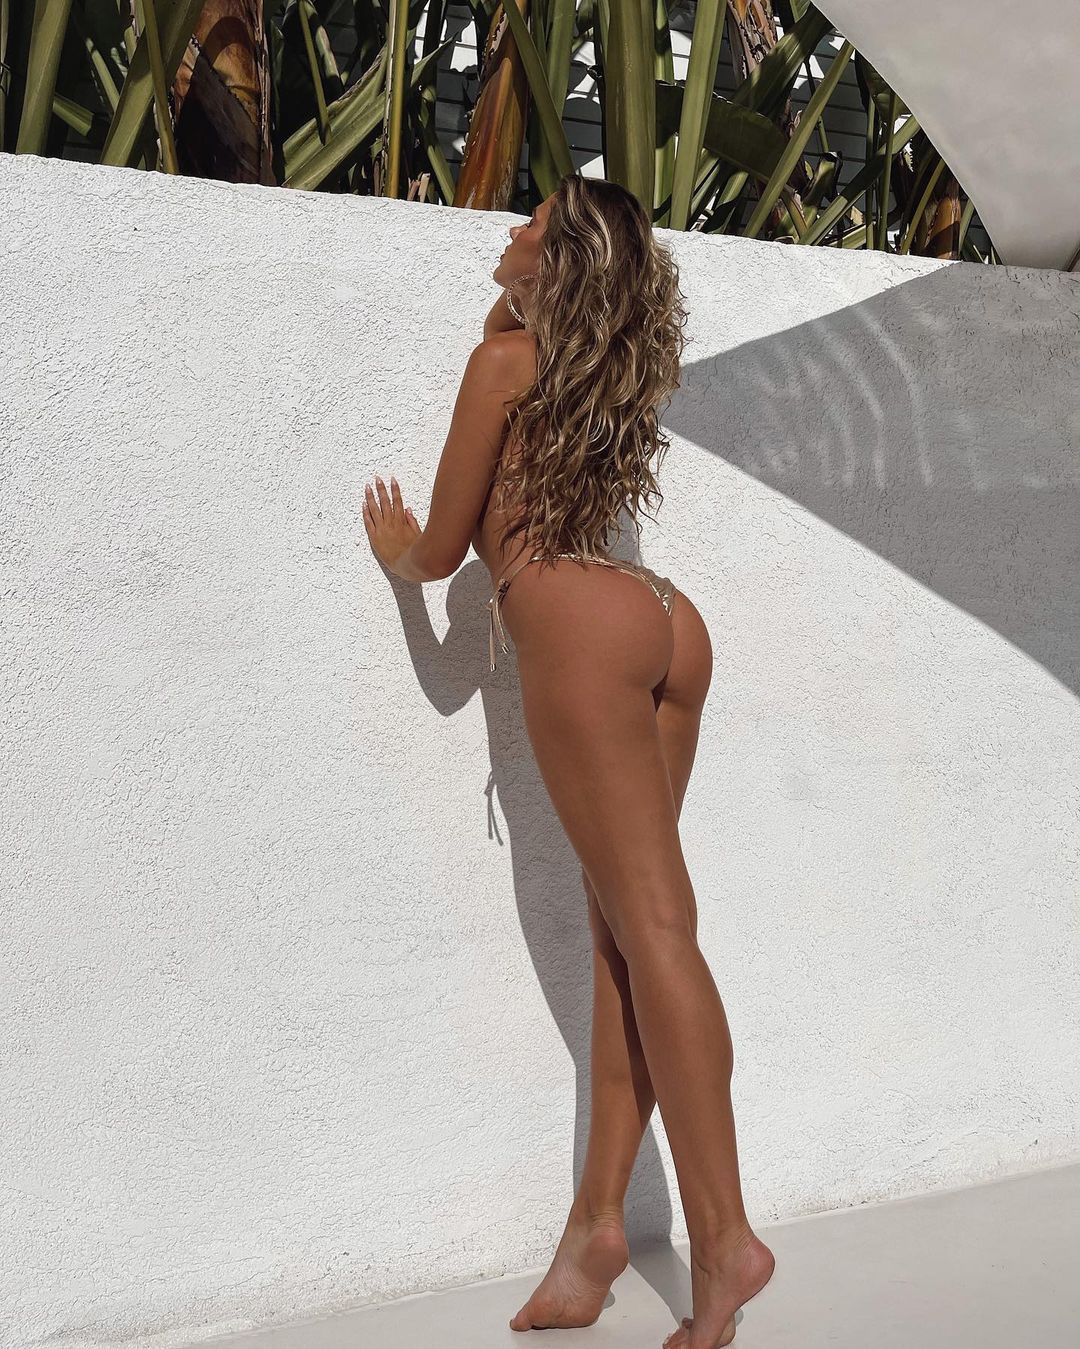 Kara Del Toro Beautiful Ass In Thong Bikiniz